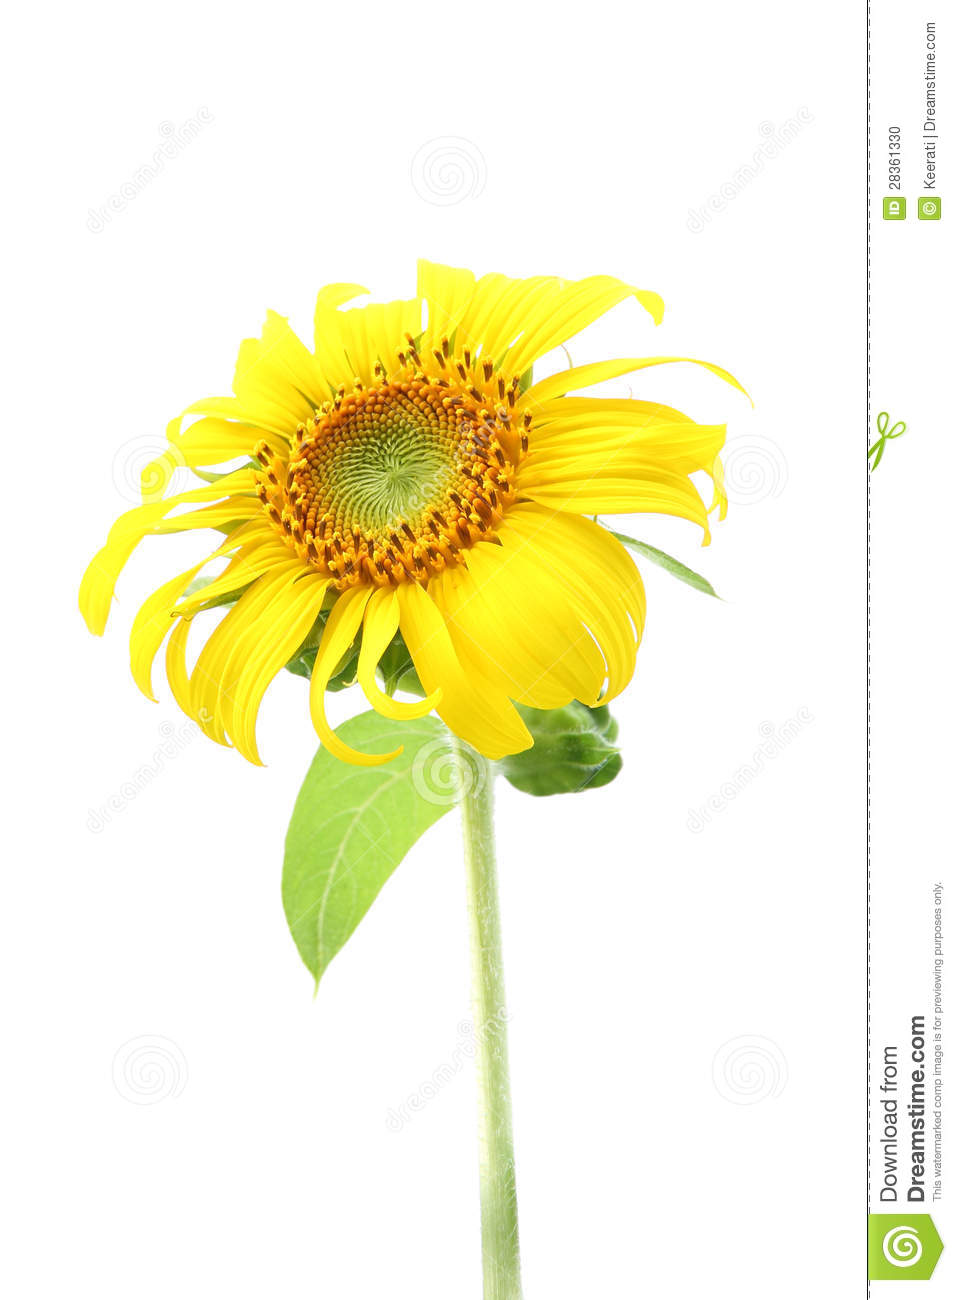 sunflower divorced singles dating site Divorced women dating - best place for new romances welcome to divorced women dating club, the best club for singles.